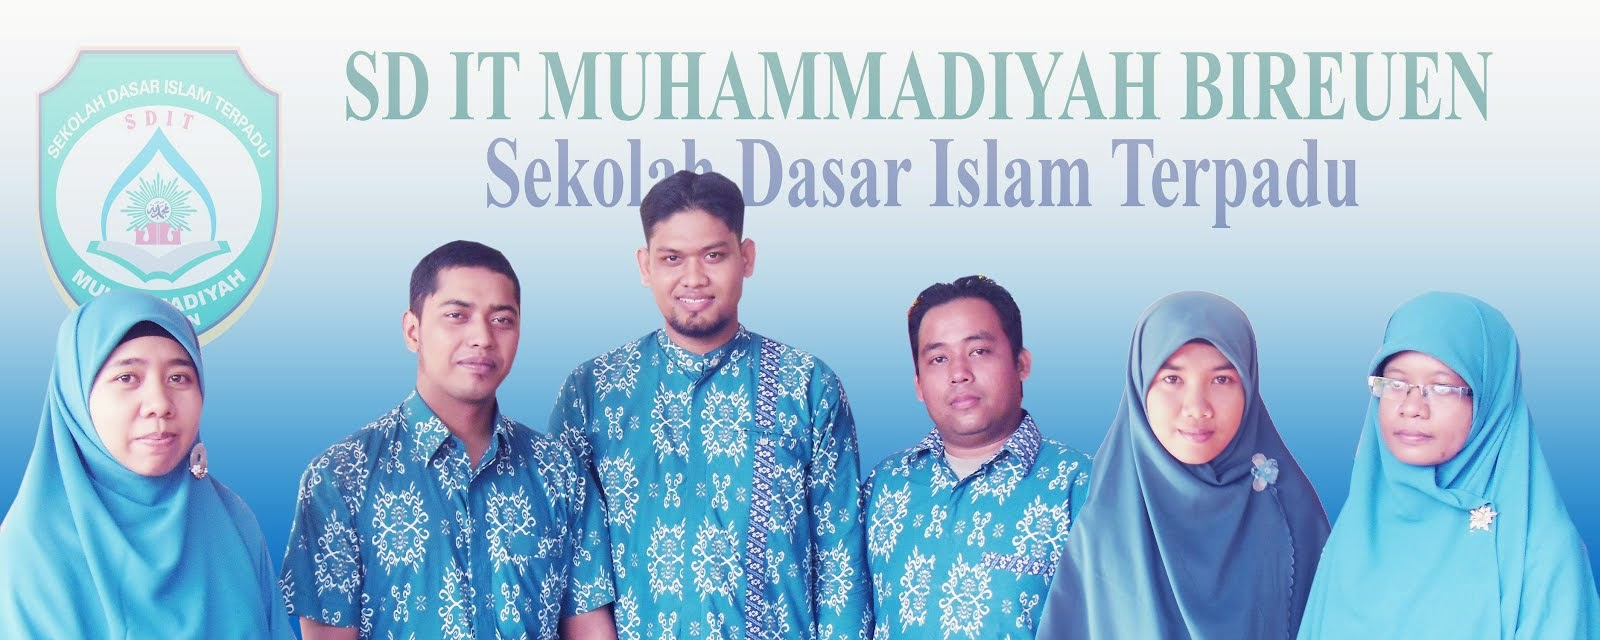 GURU SD IT MUHAMMADIYAH BIREUEN